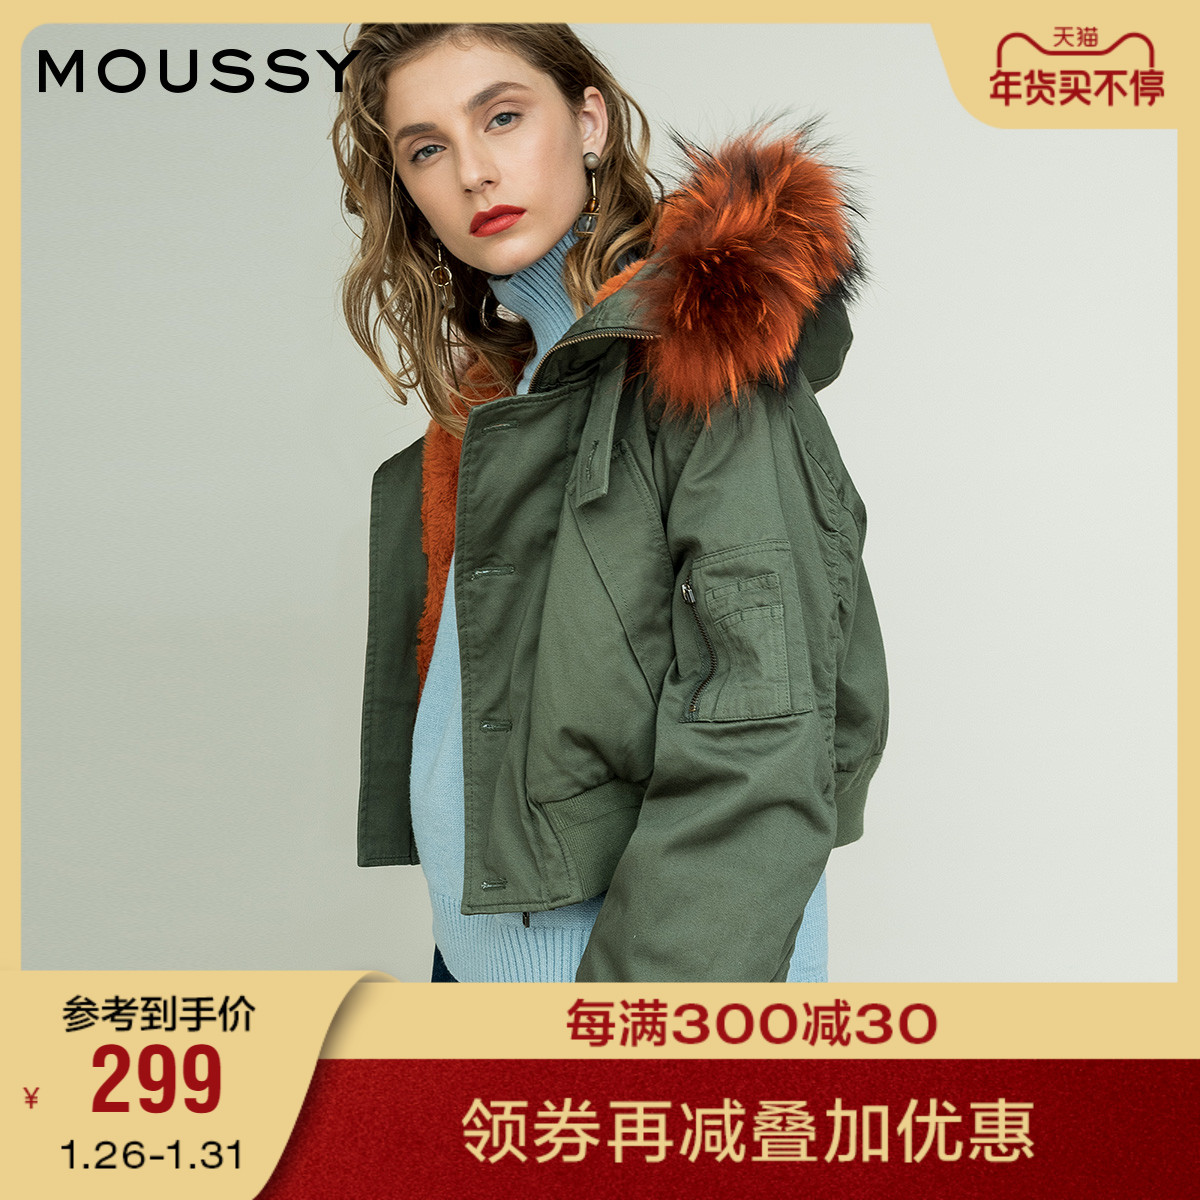 MOUSSY winter big fur collar plus cashmere lining casual jacket cotton 028CAB30-5150